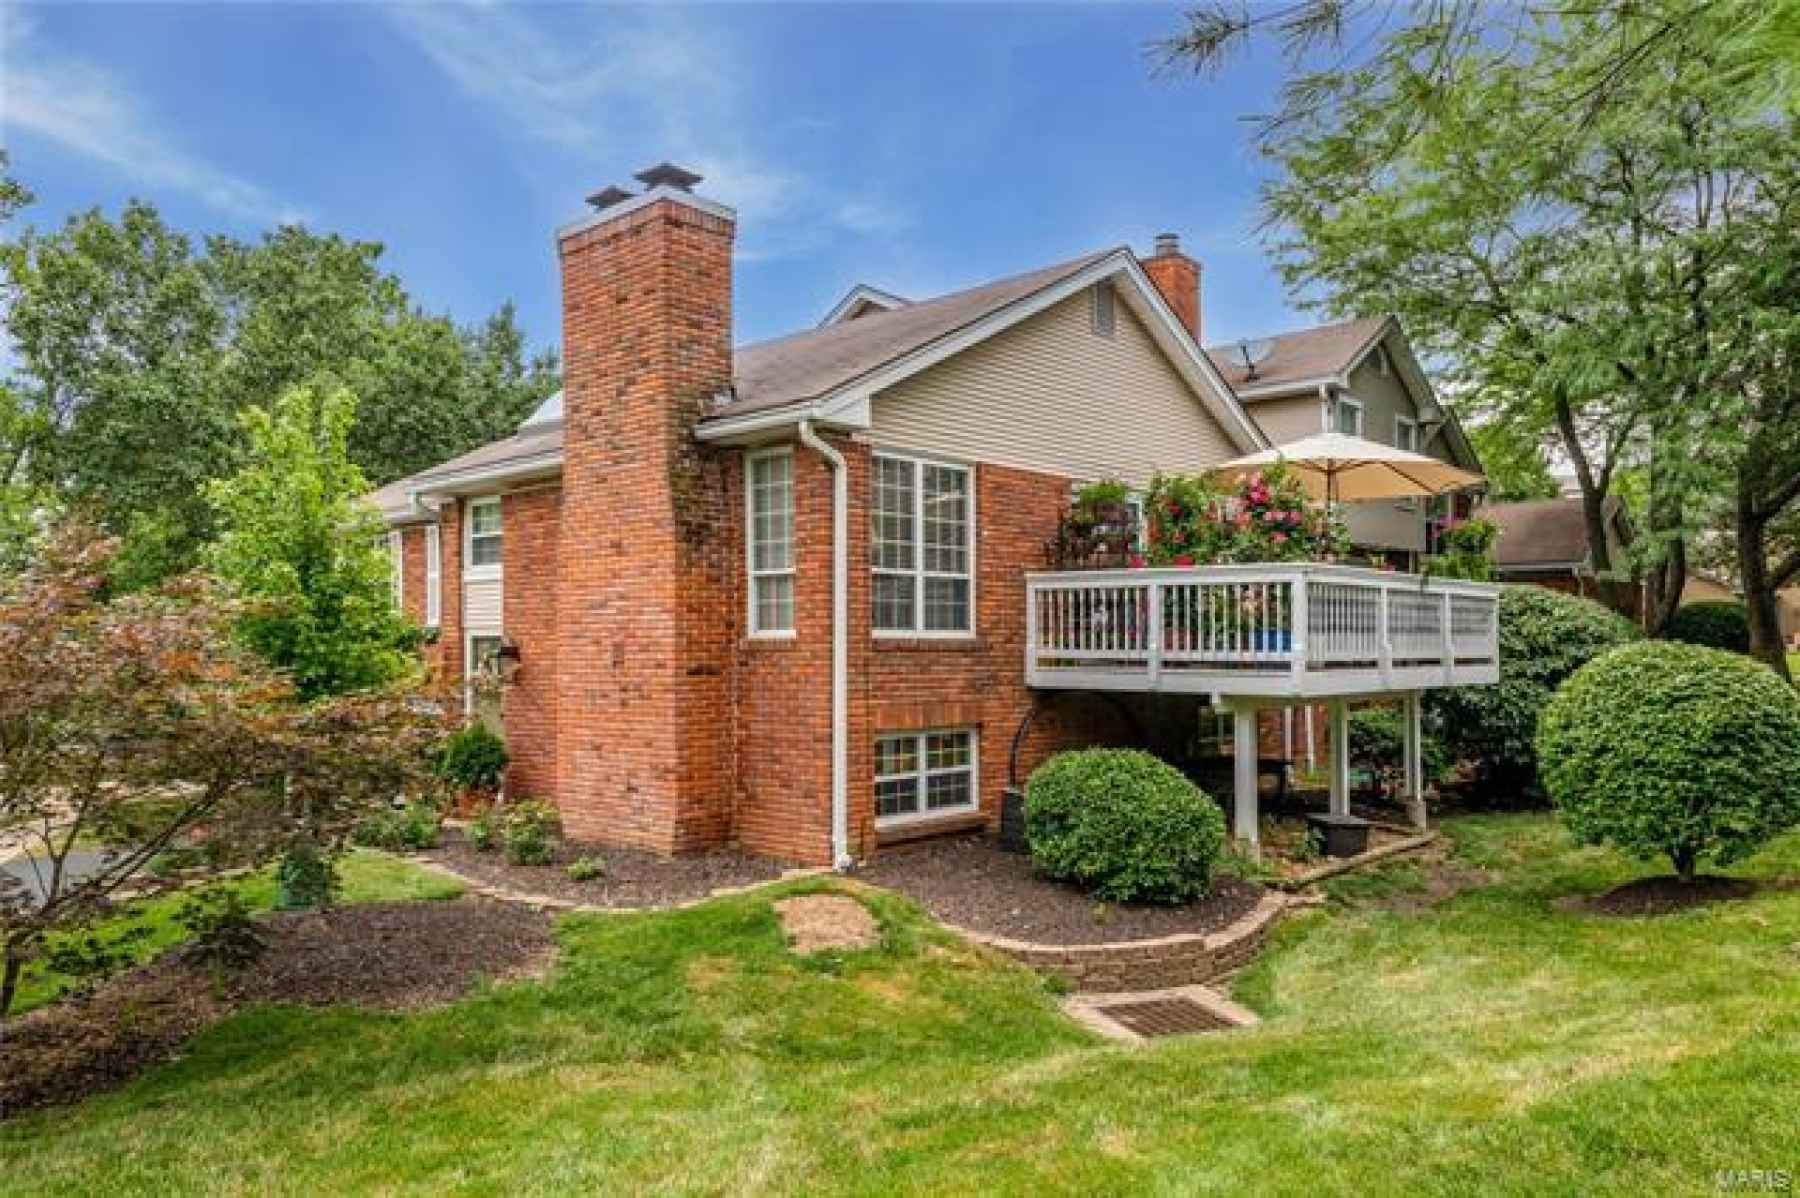 A view from the side shows off the beautiful landscaping and gorgeous deck